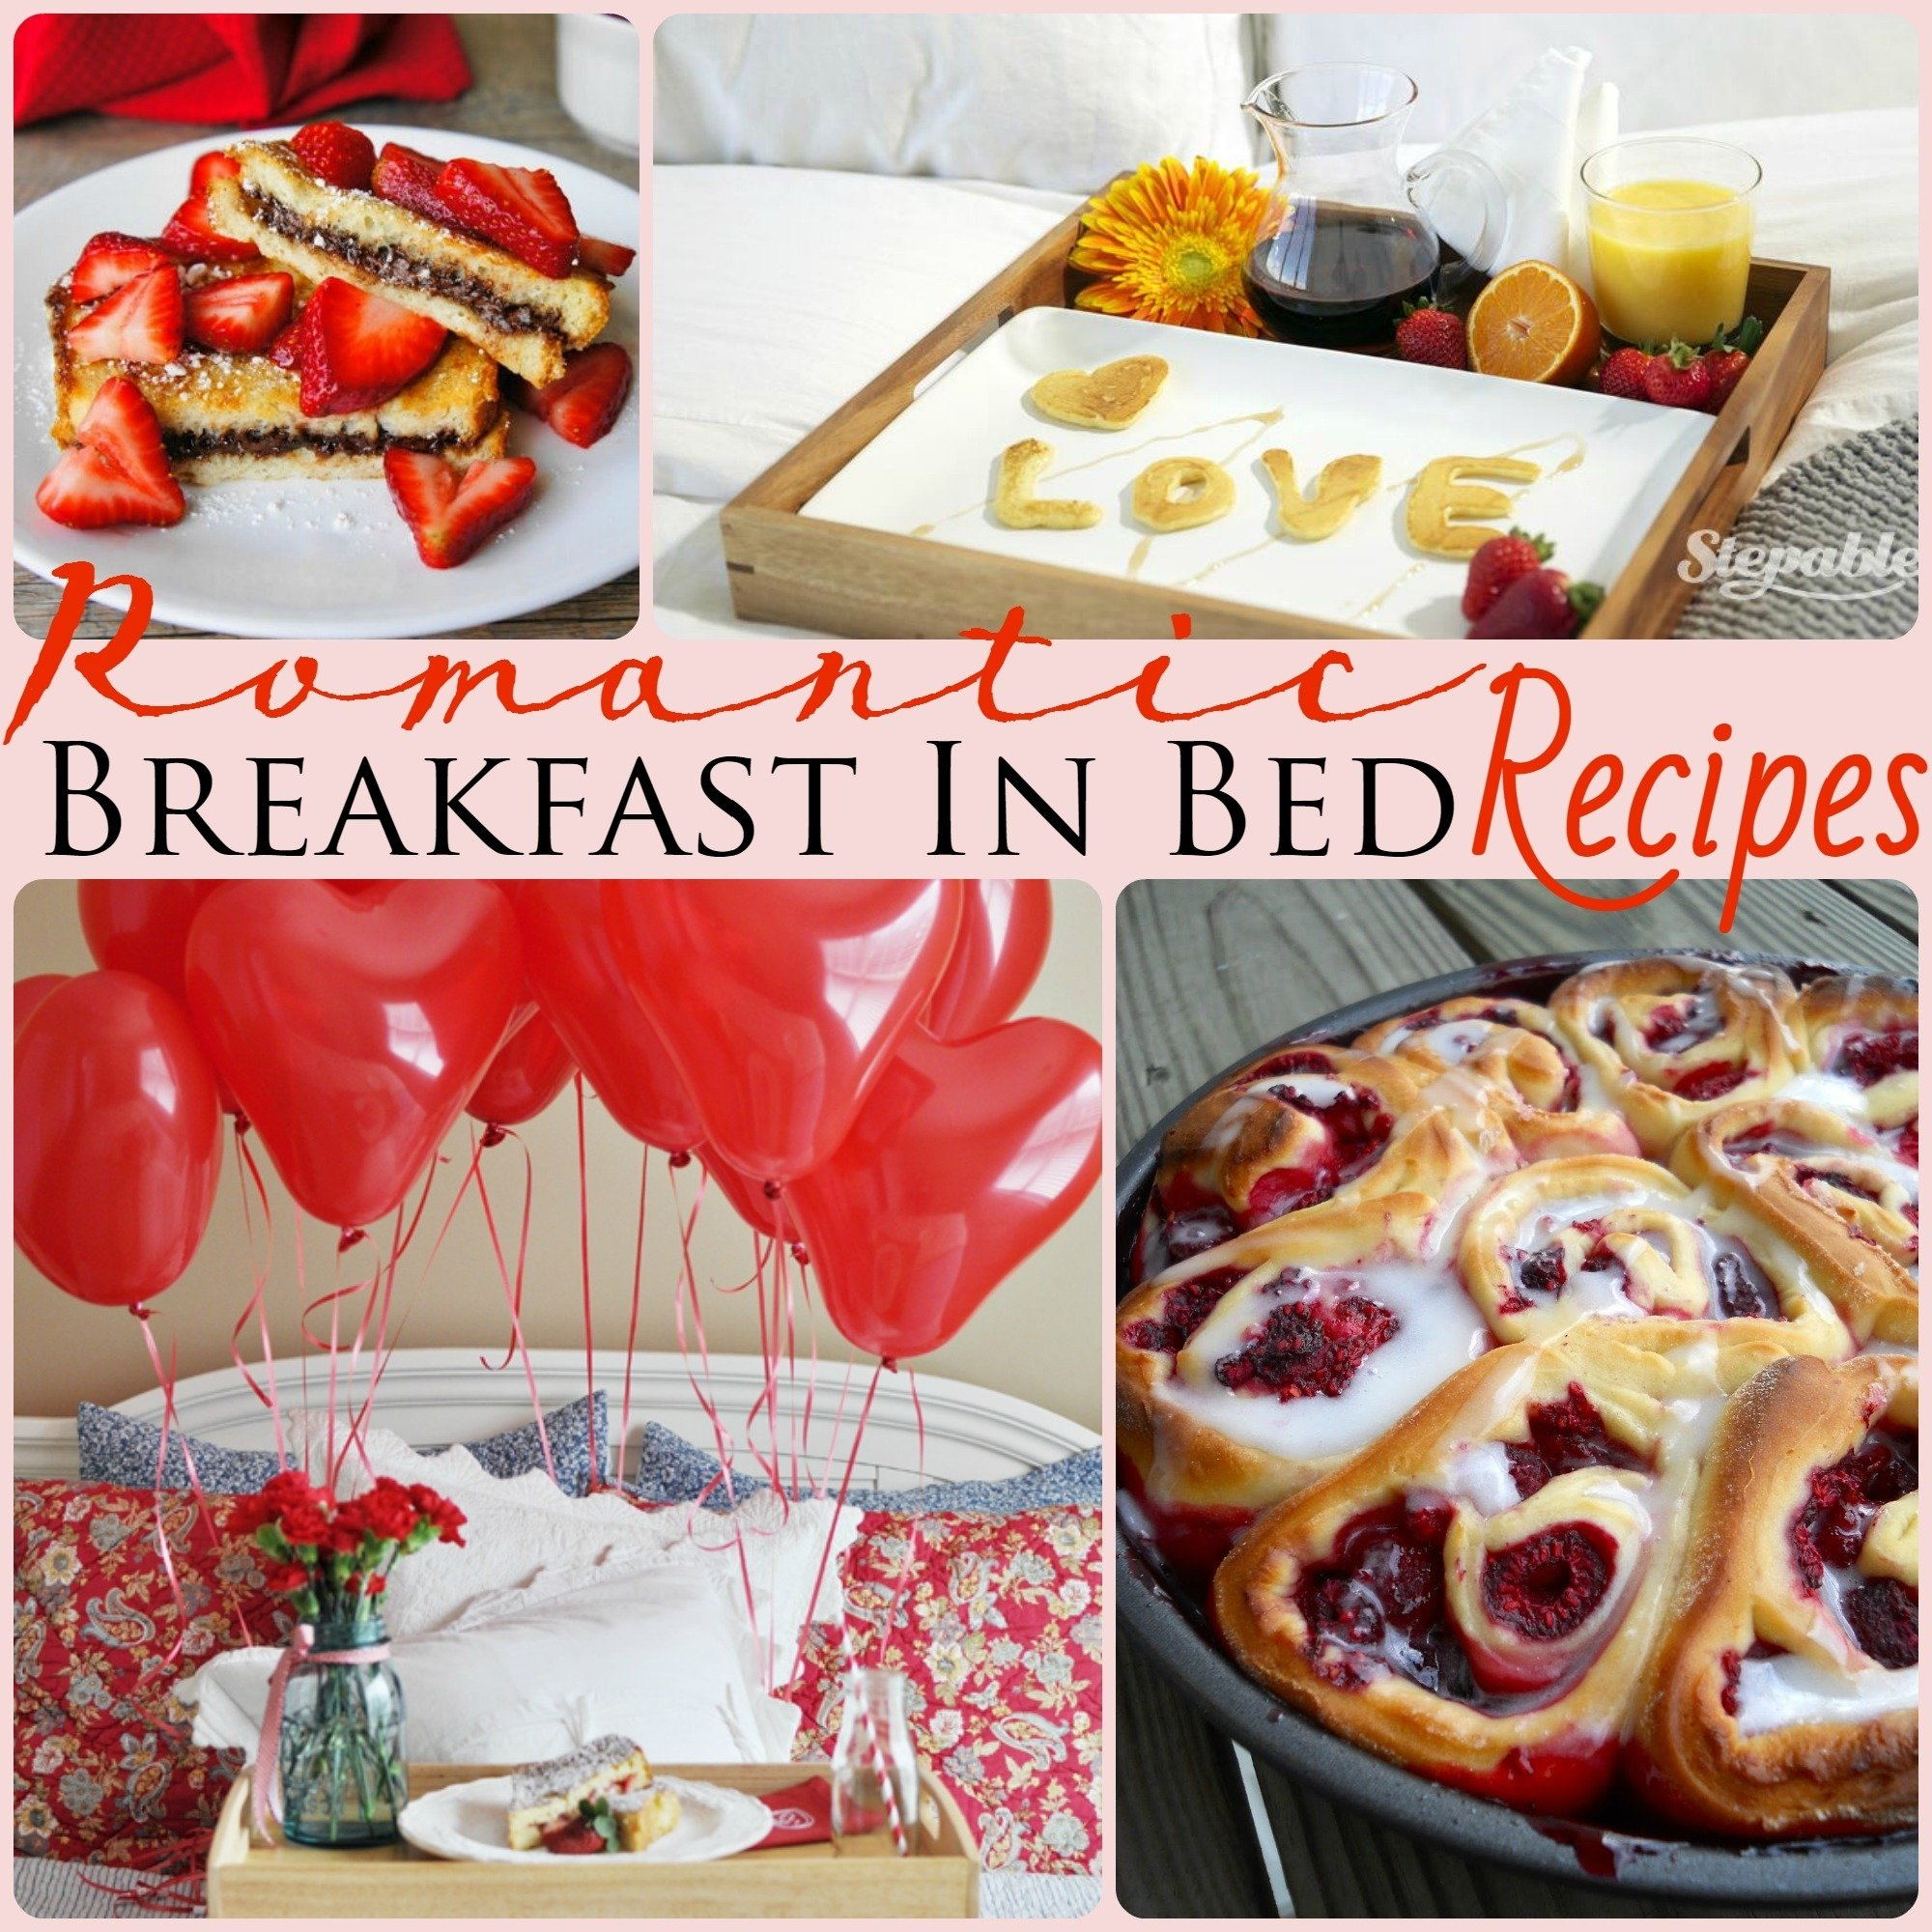 21 romantic breakfast in bed recipes - piece of home